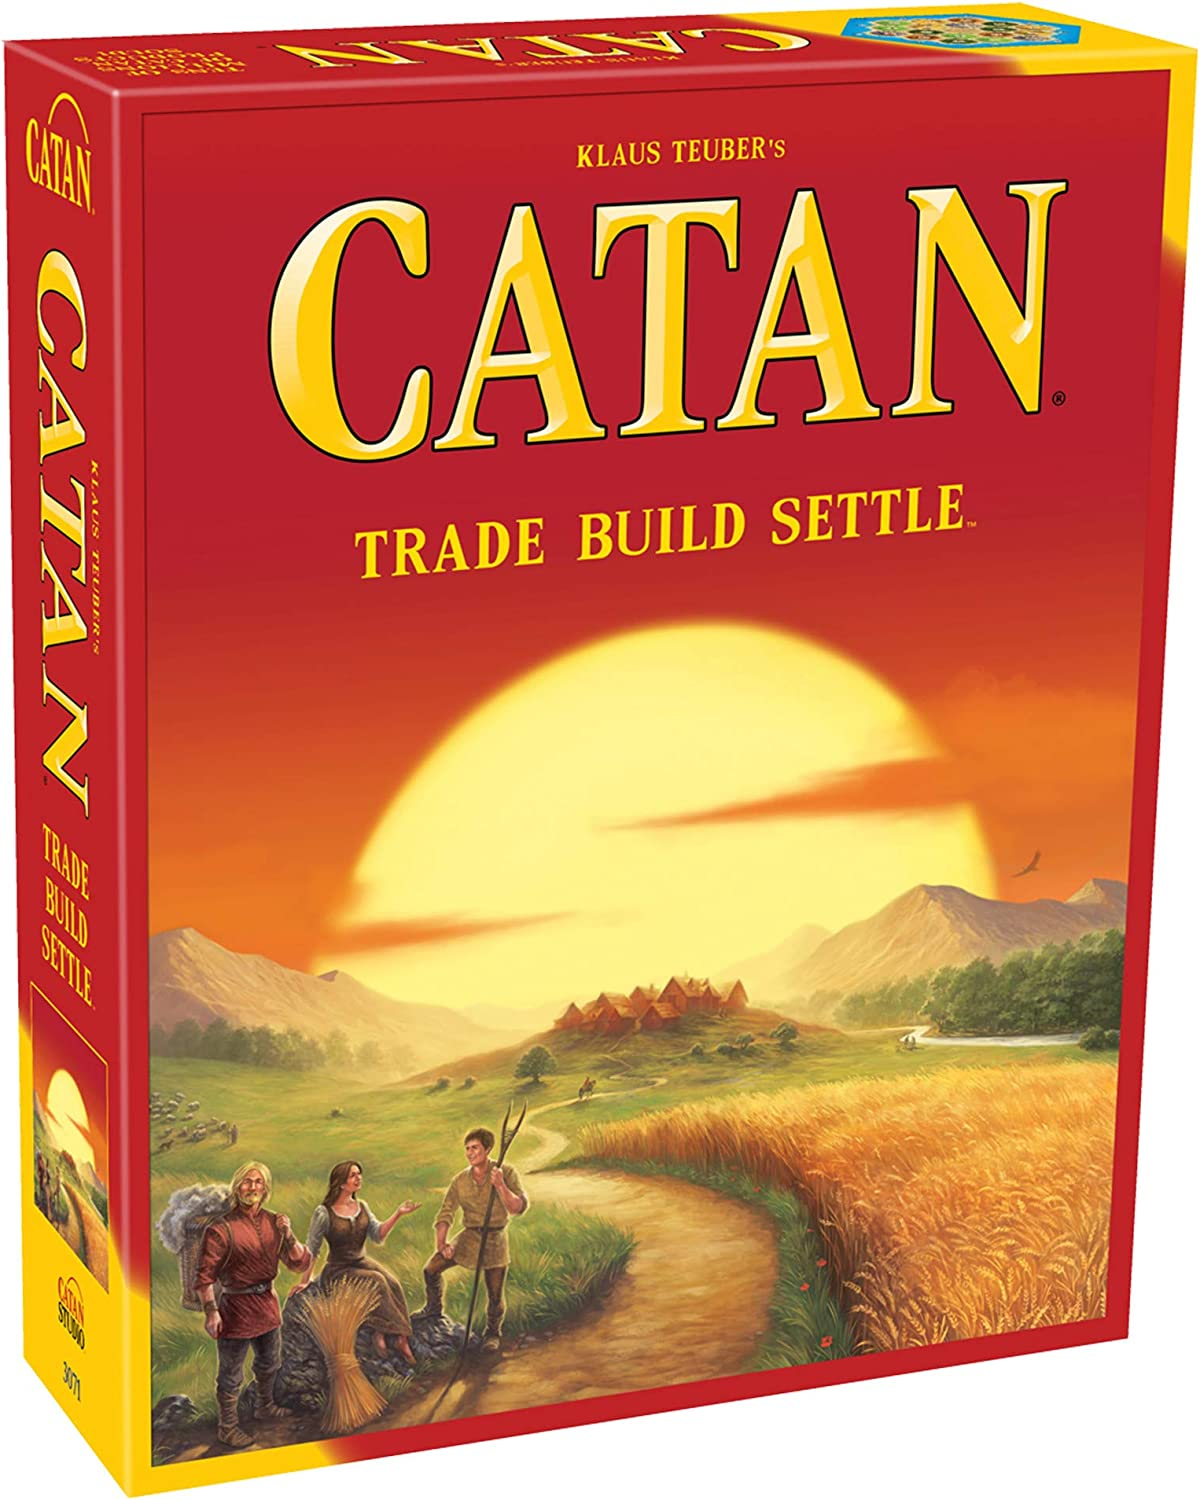 Amazon.com: Catan The Board Game: Toys & Games